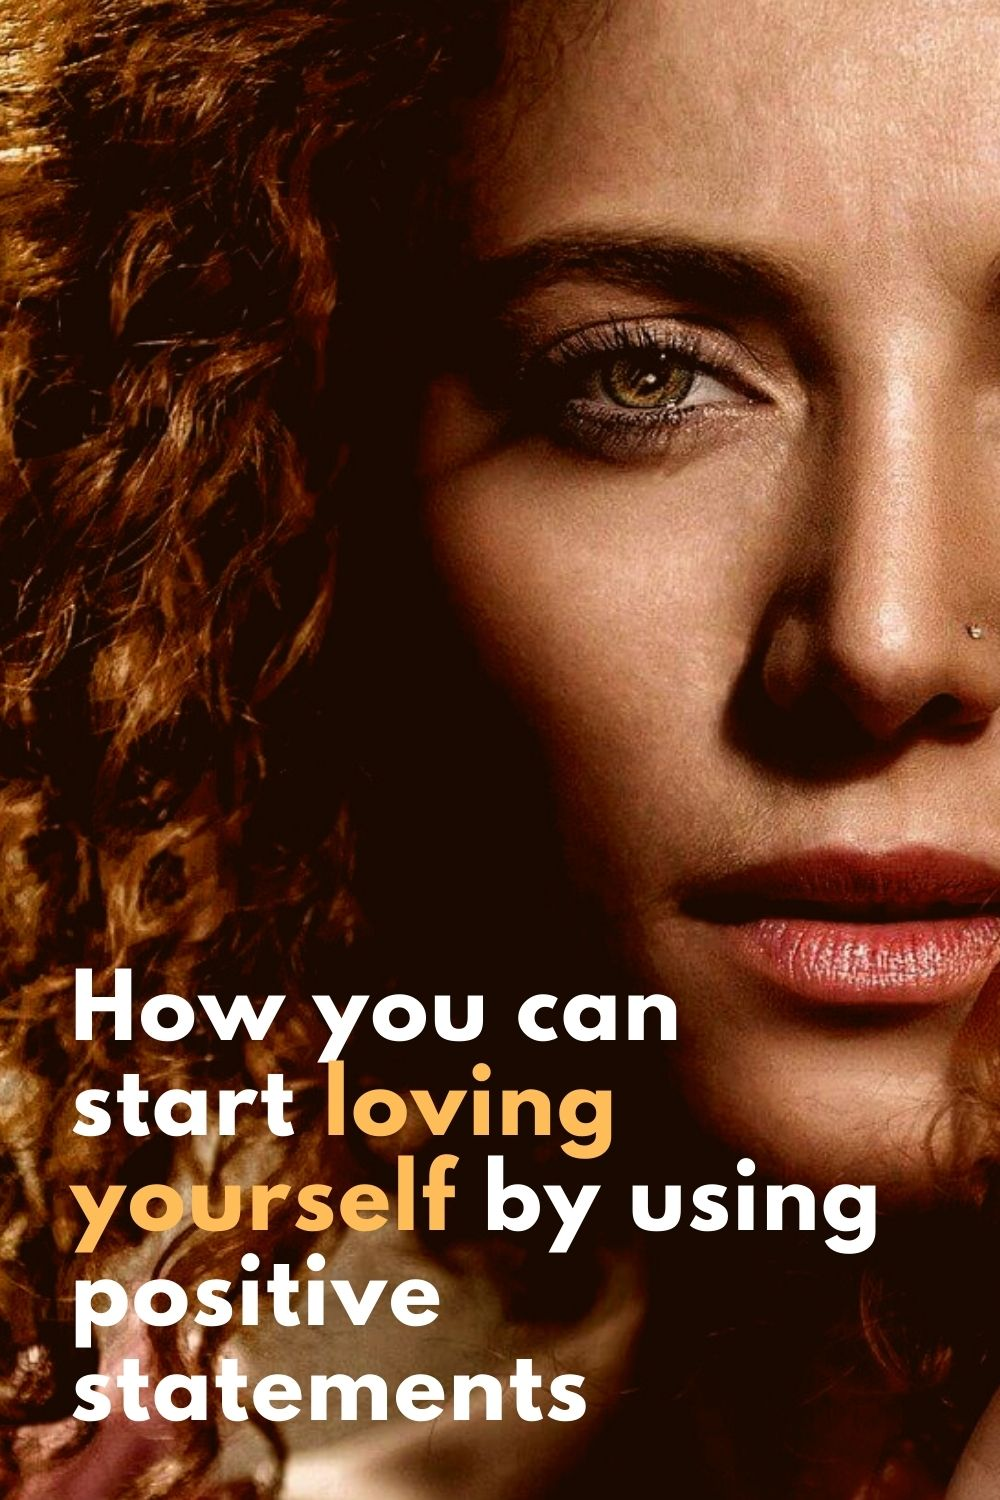 How you can start loving yourself by using positive statements